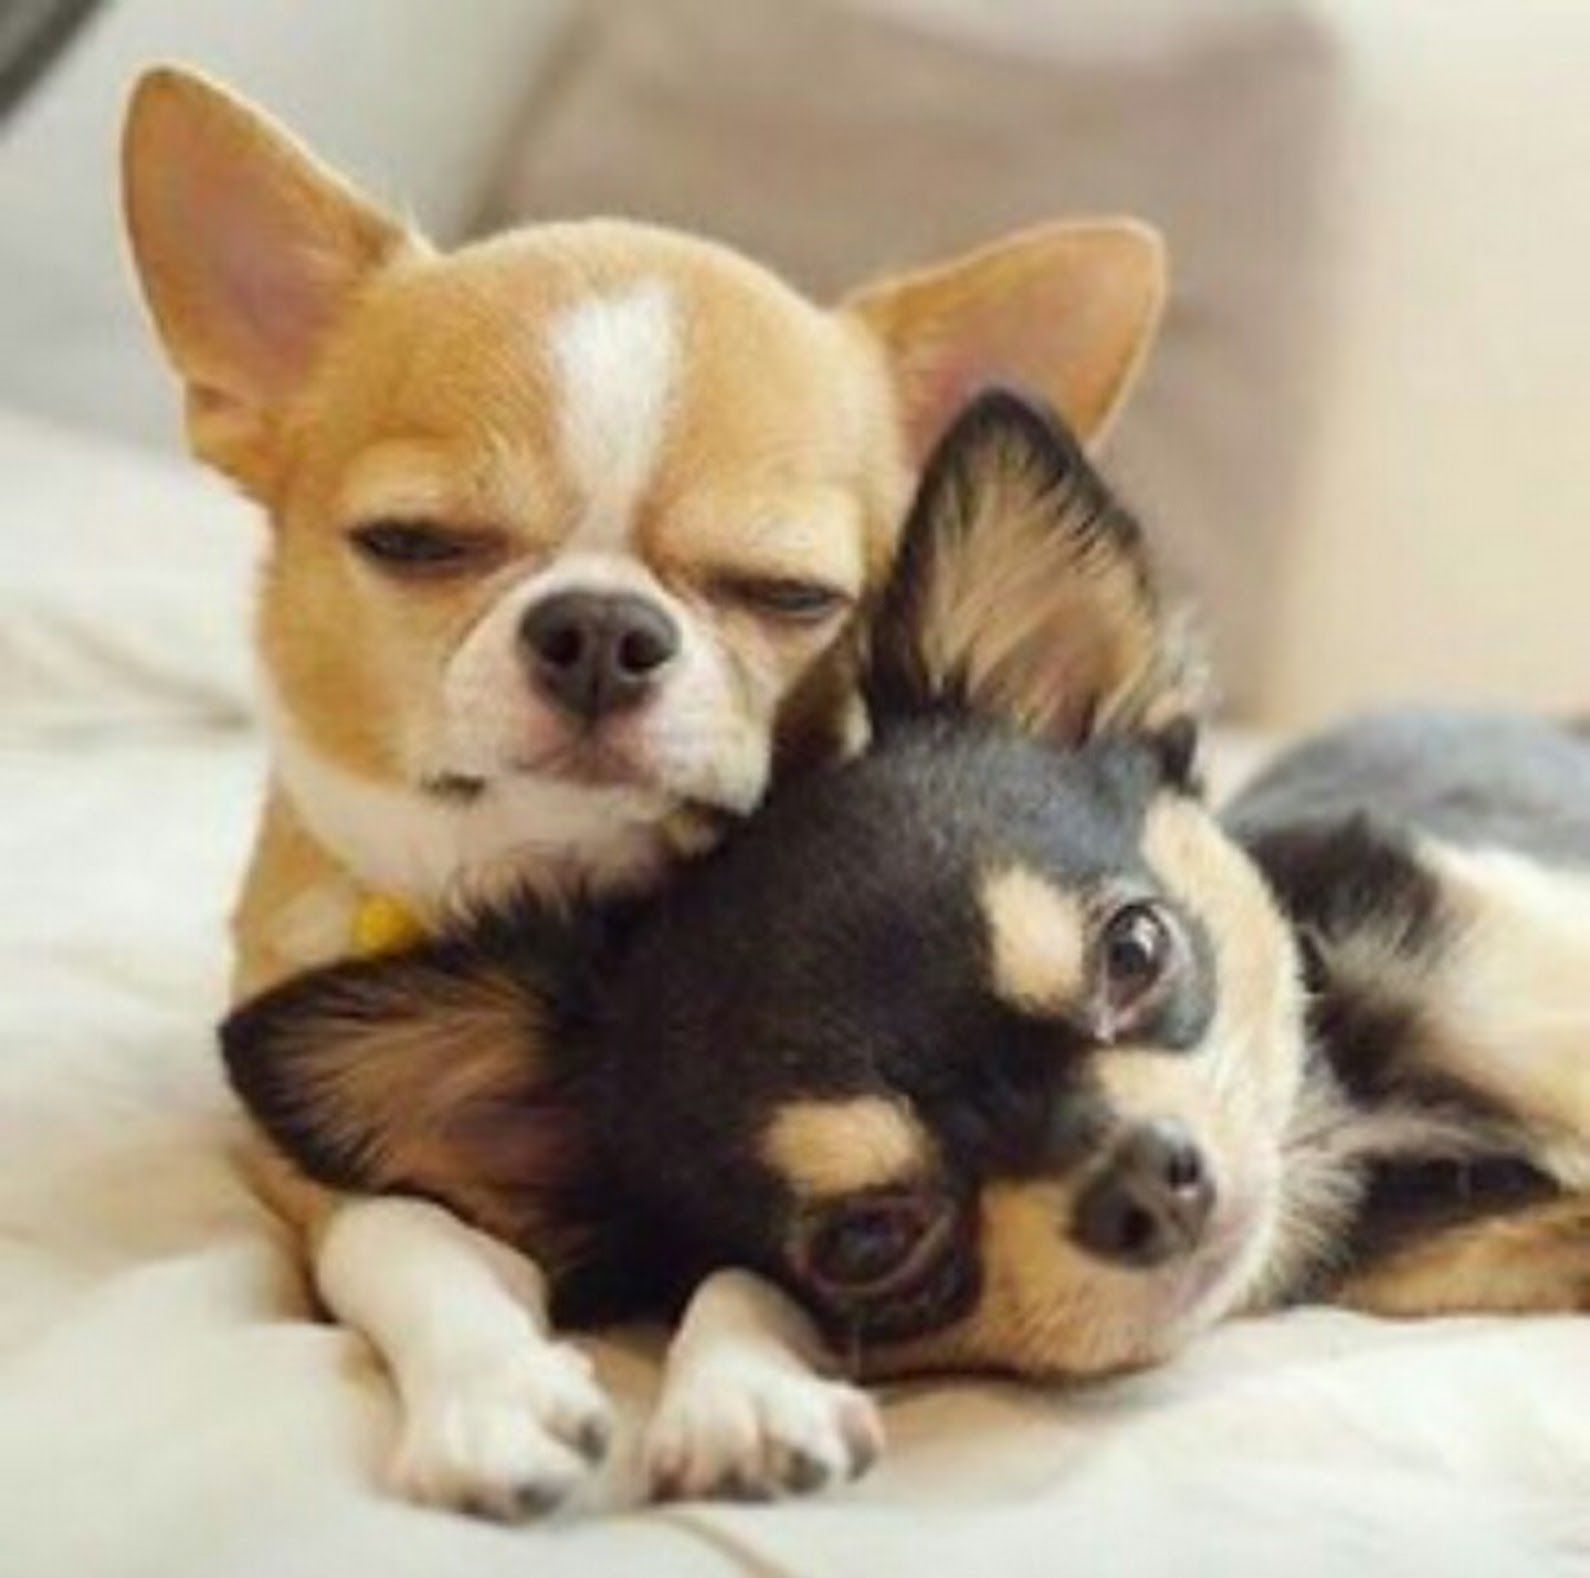 Image by Ramin on PCHFrontPage Chihuahua puppies, Pets